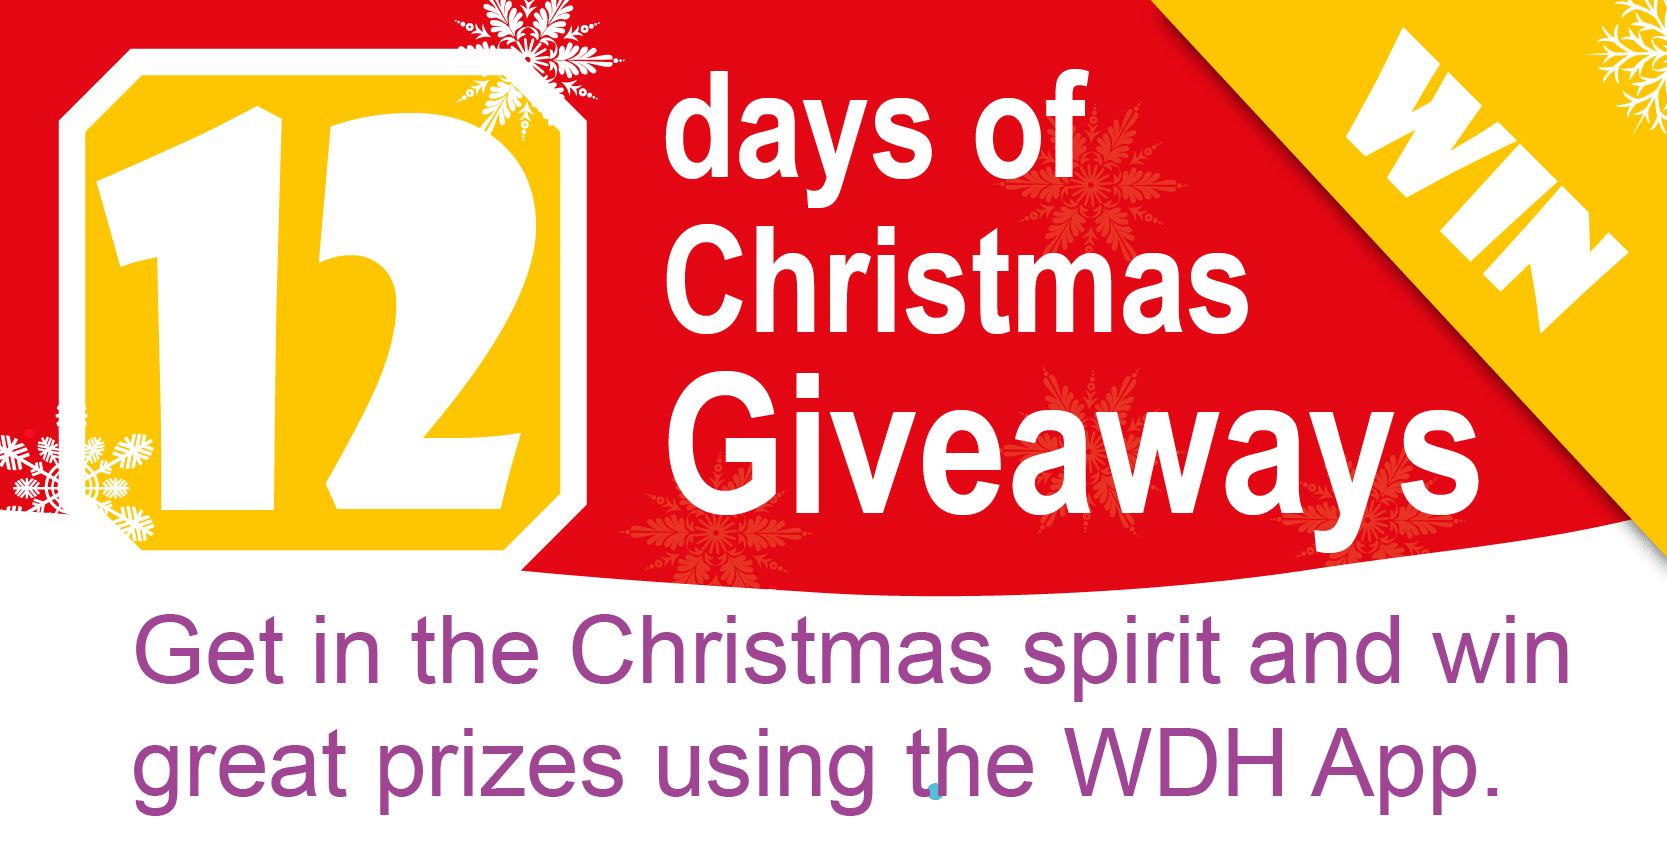 Get in the Christmas spirit and win great prizes using the WDH App